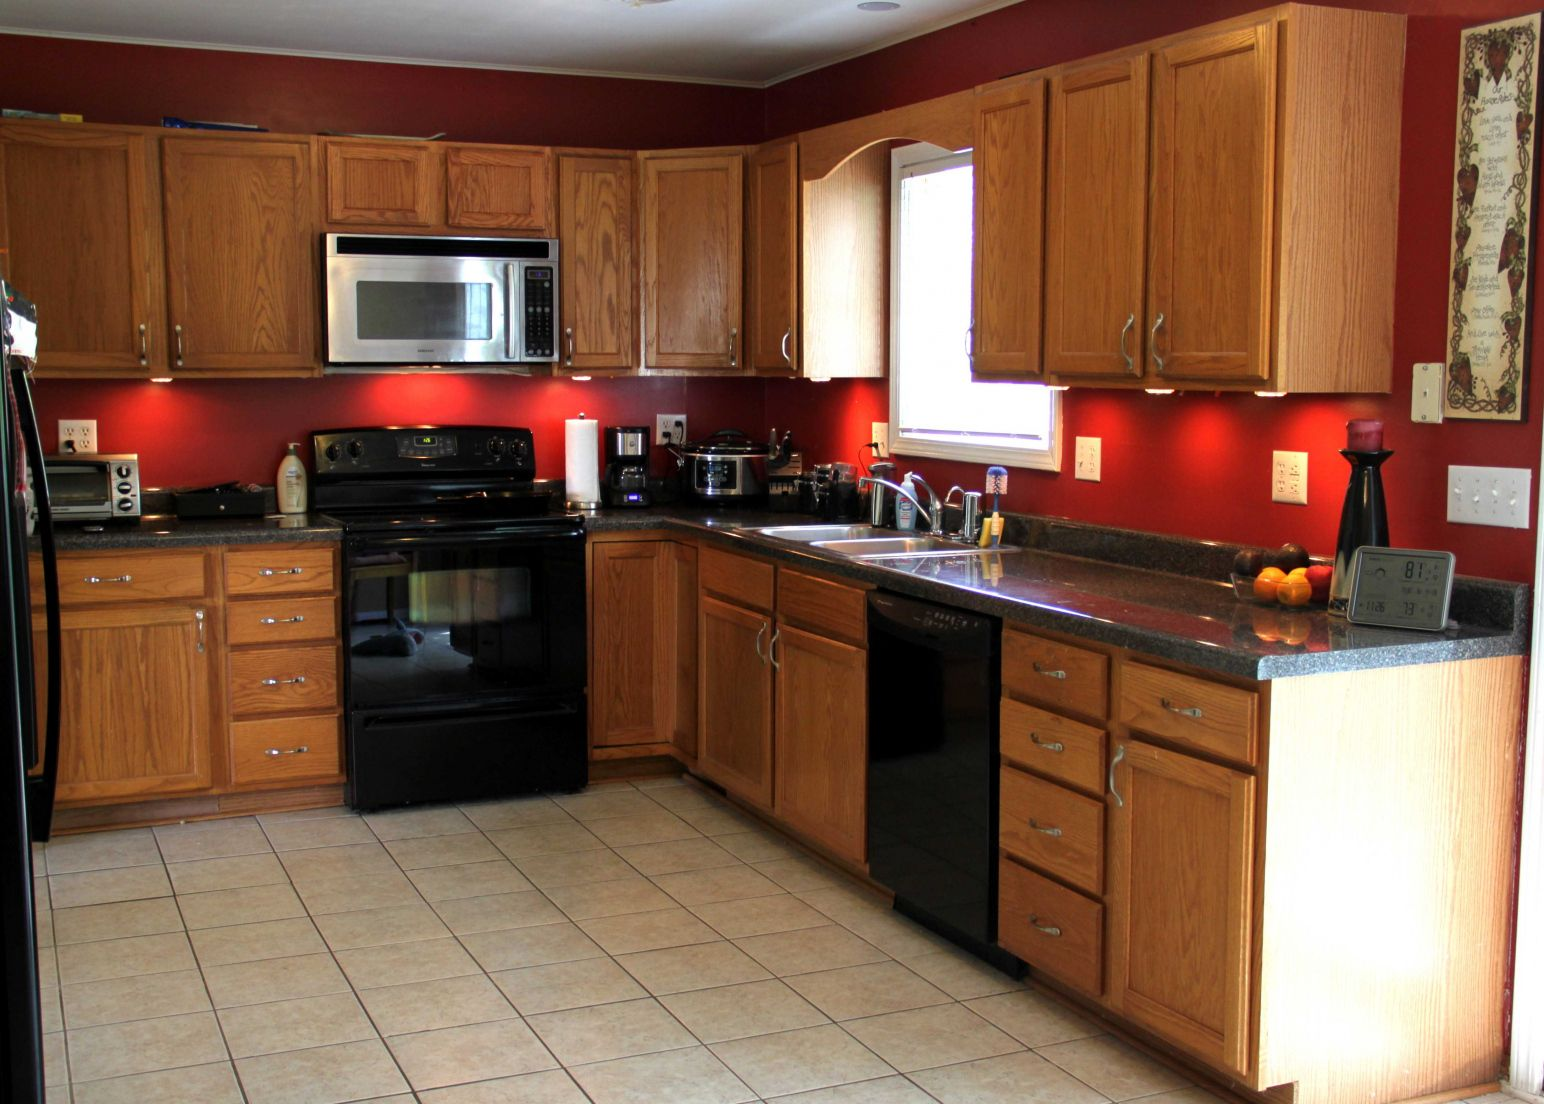 100 Paint Colors For Kitchens With Golden Oak Cabinets Rustic Kitchen Decorating Ideas Check Mor Oak Kitchen Cabinets Red Kitchen Walls Red Kitchen Cabinets